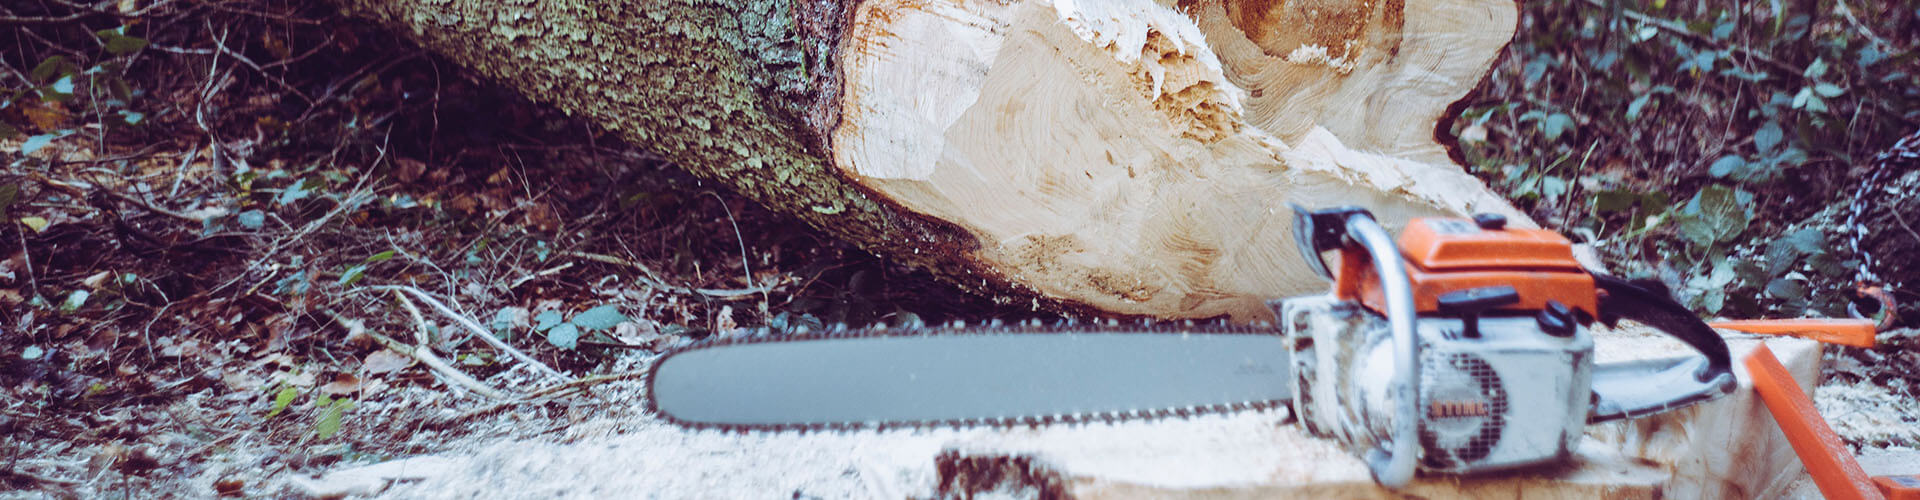 Tree felling, tree cutting and tree stump removal.